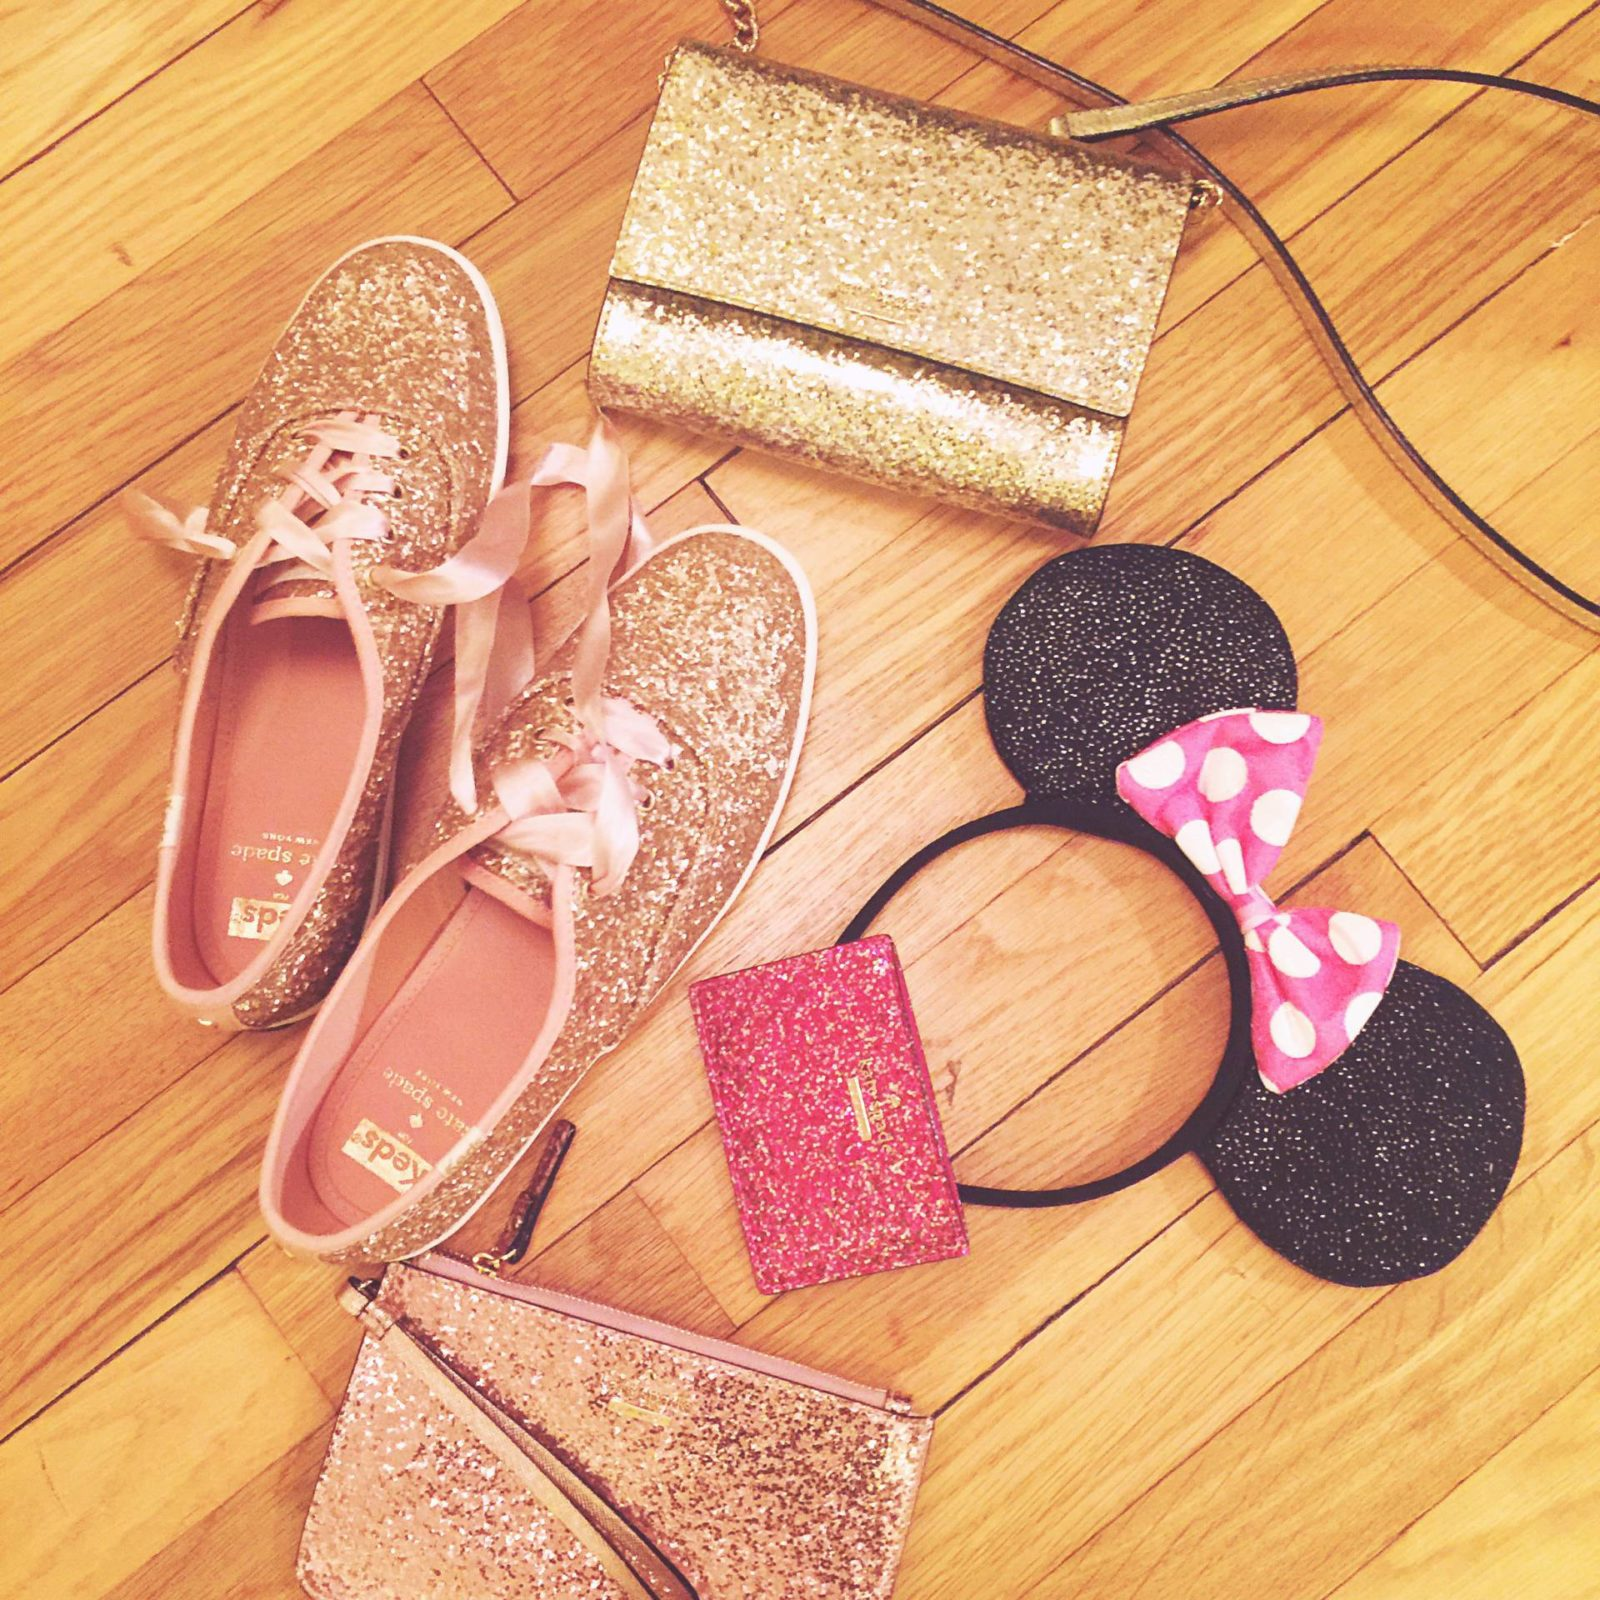 kate spade and keds glitter shoes wallet minnie mouse ears